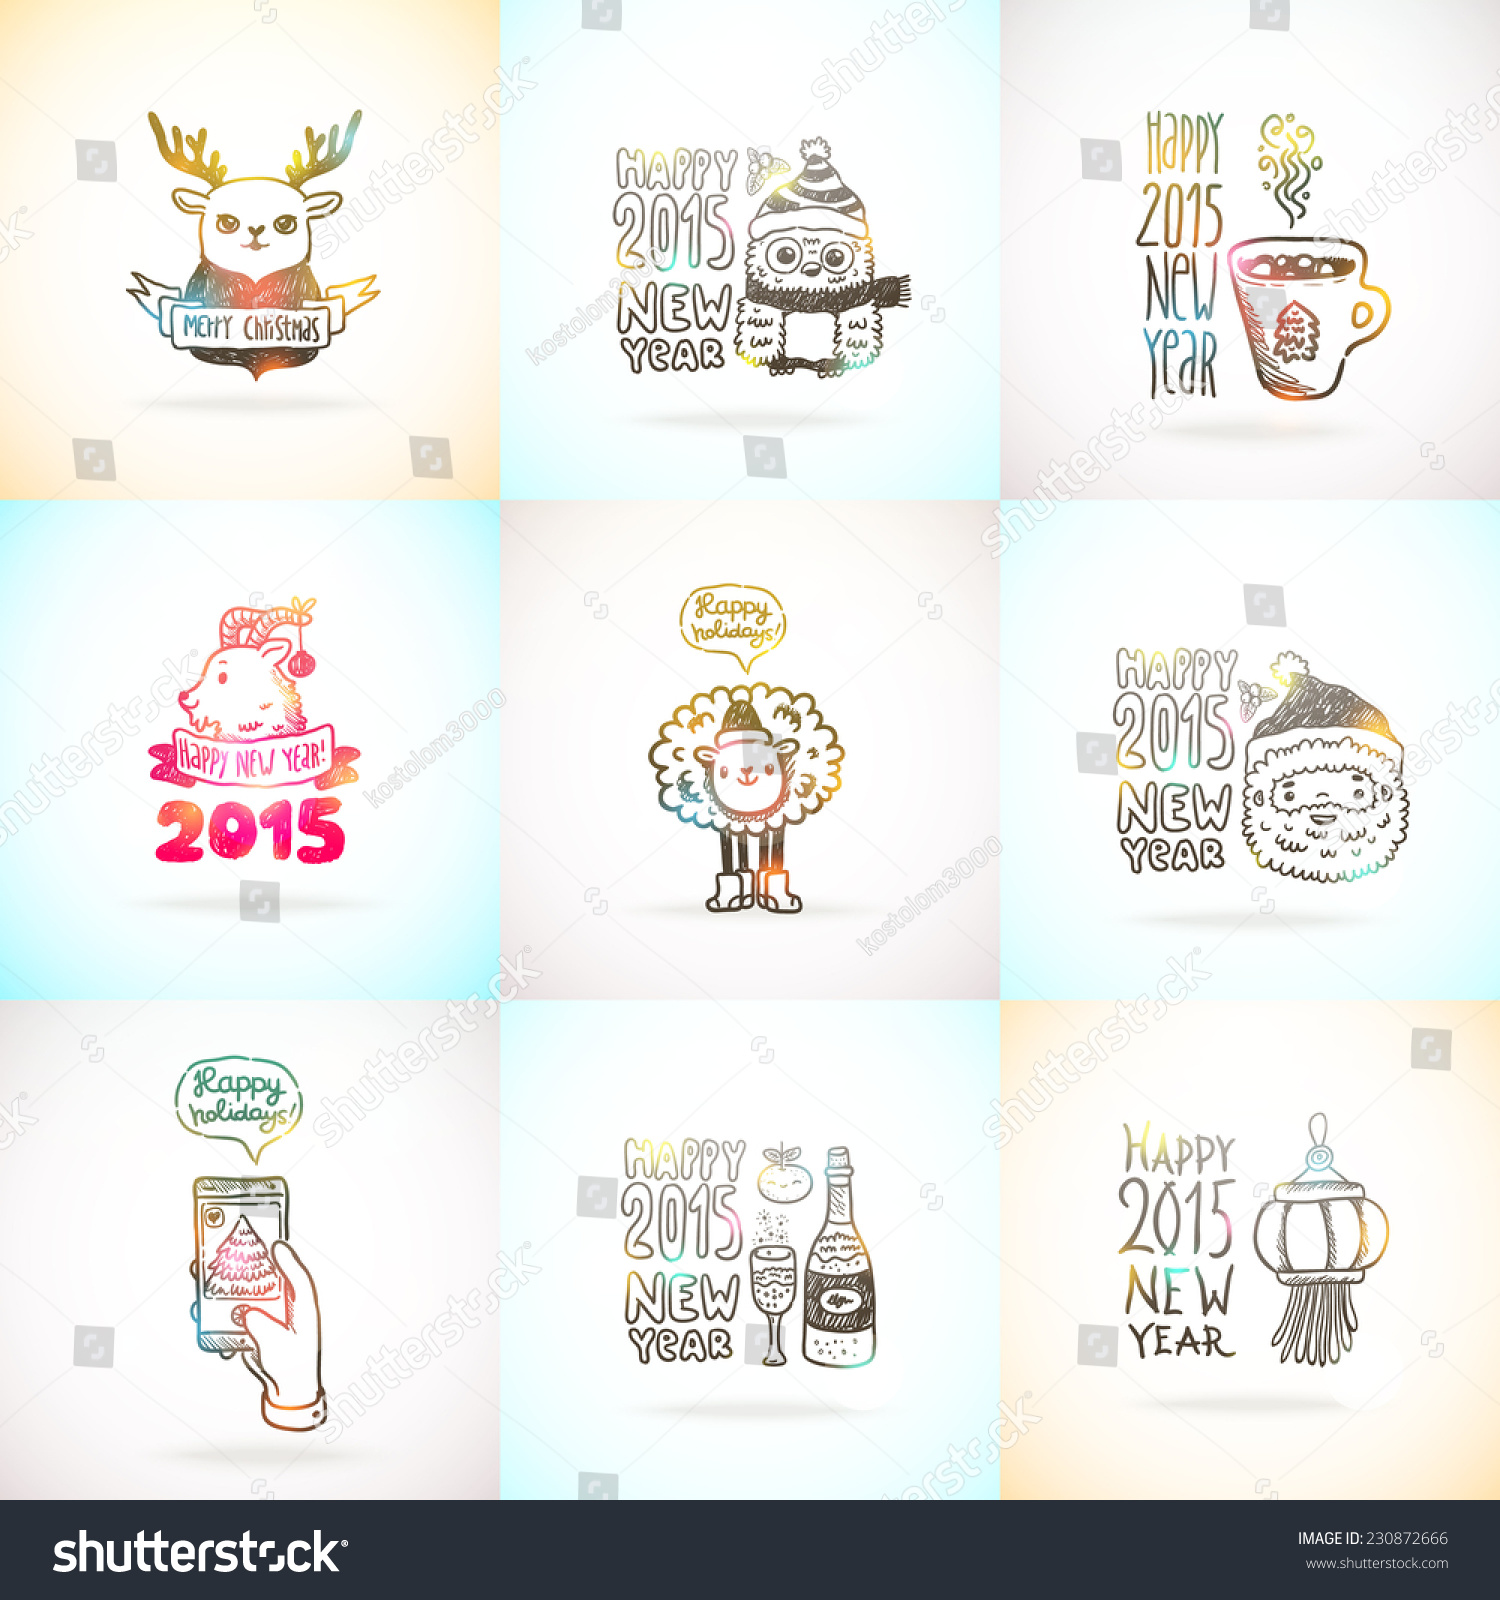 cute sketch doodle happy new year and merry christmas card set with santa claus deer